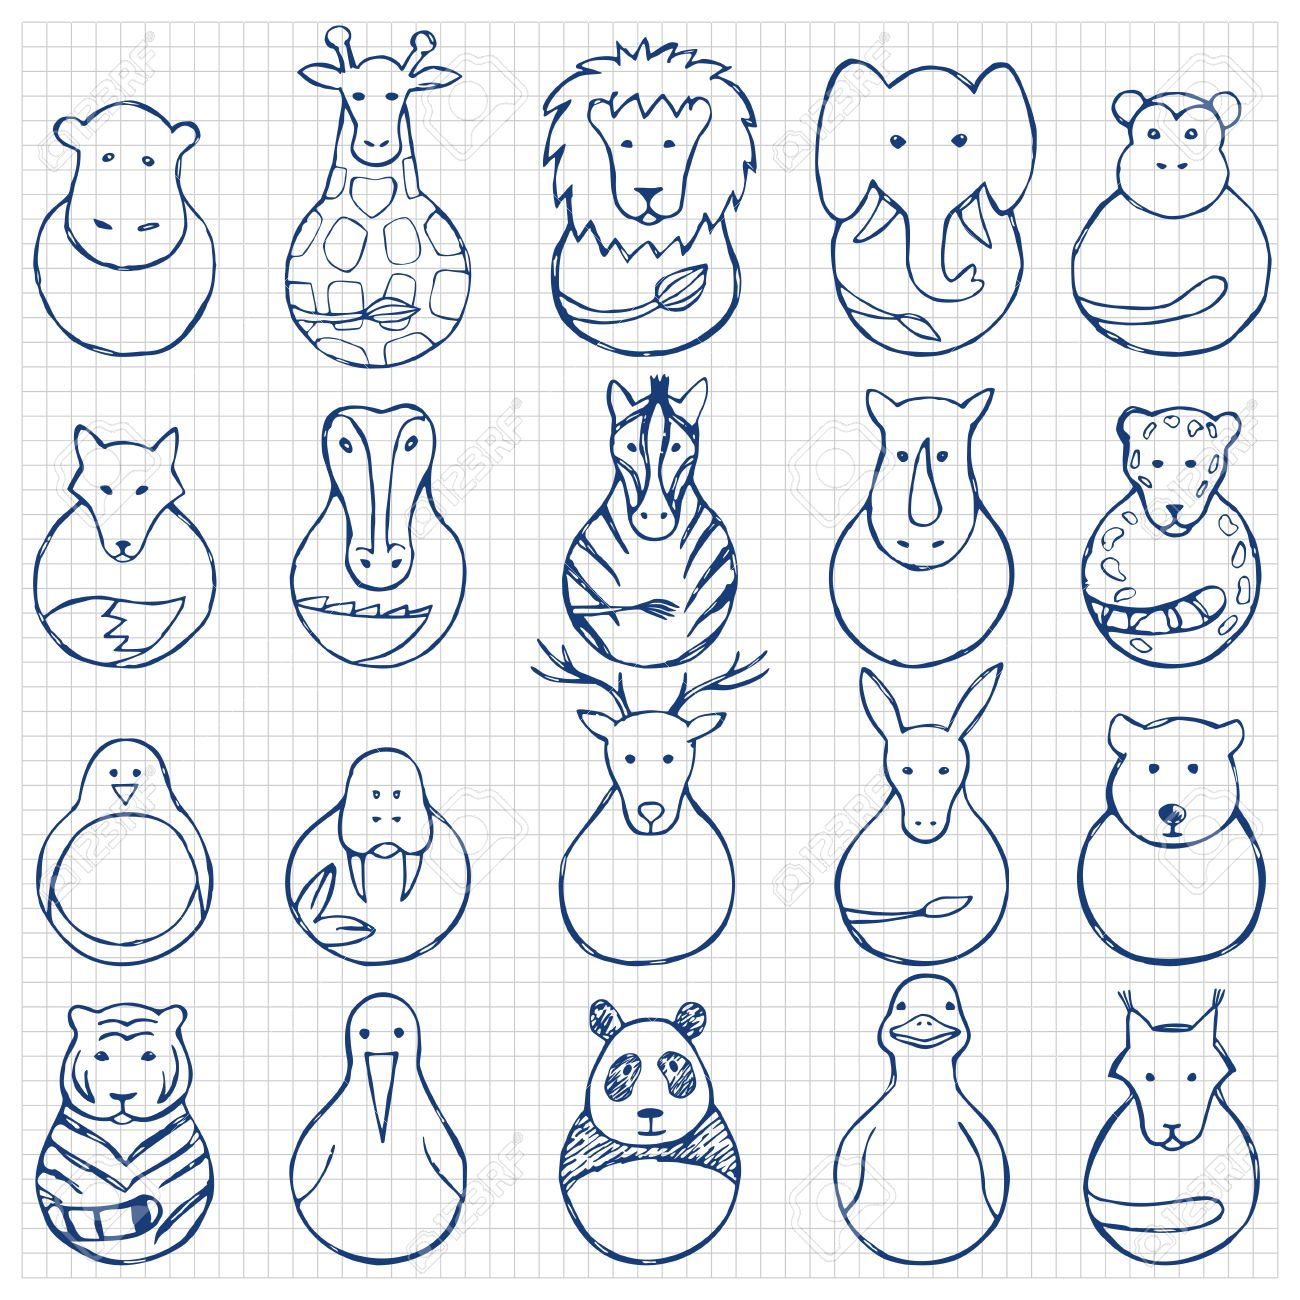 1300x1300 Children Drawing Of Animal Toys On Squared Background Royalty Free